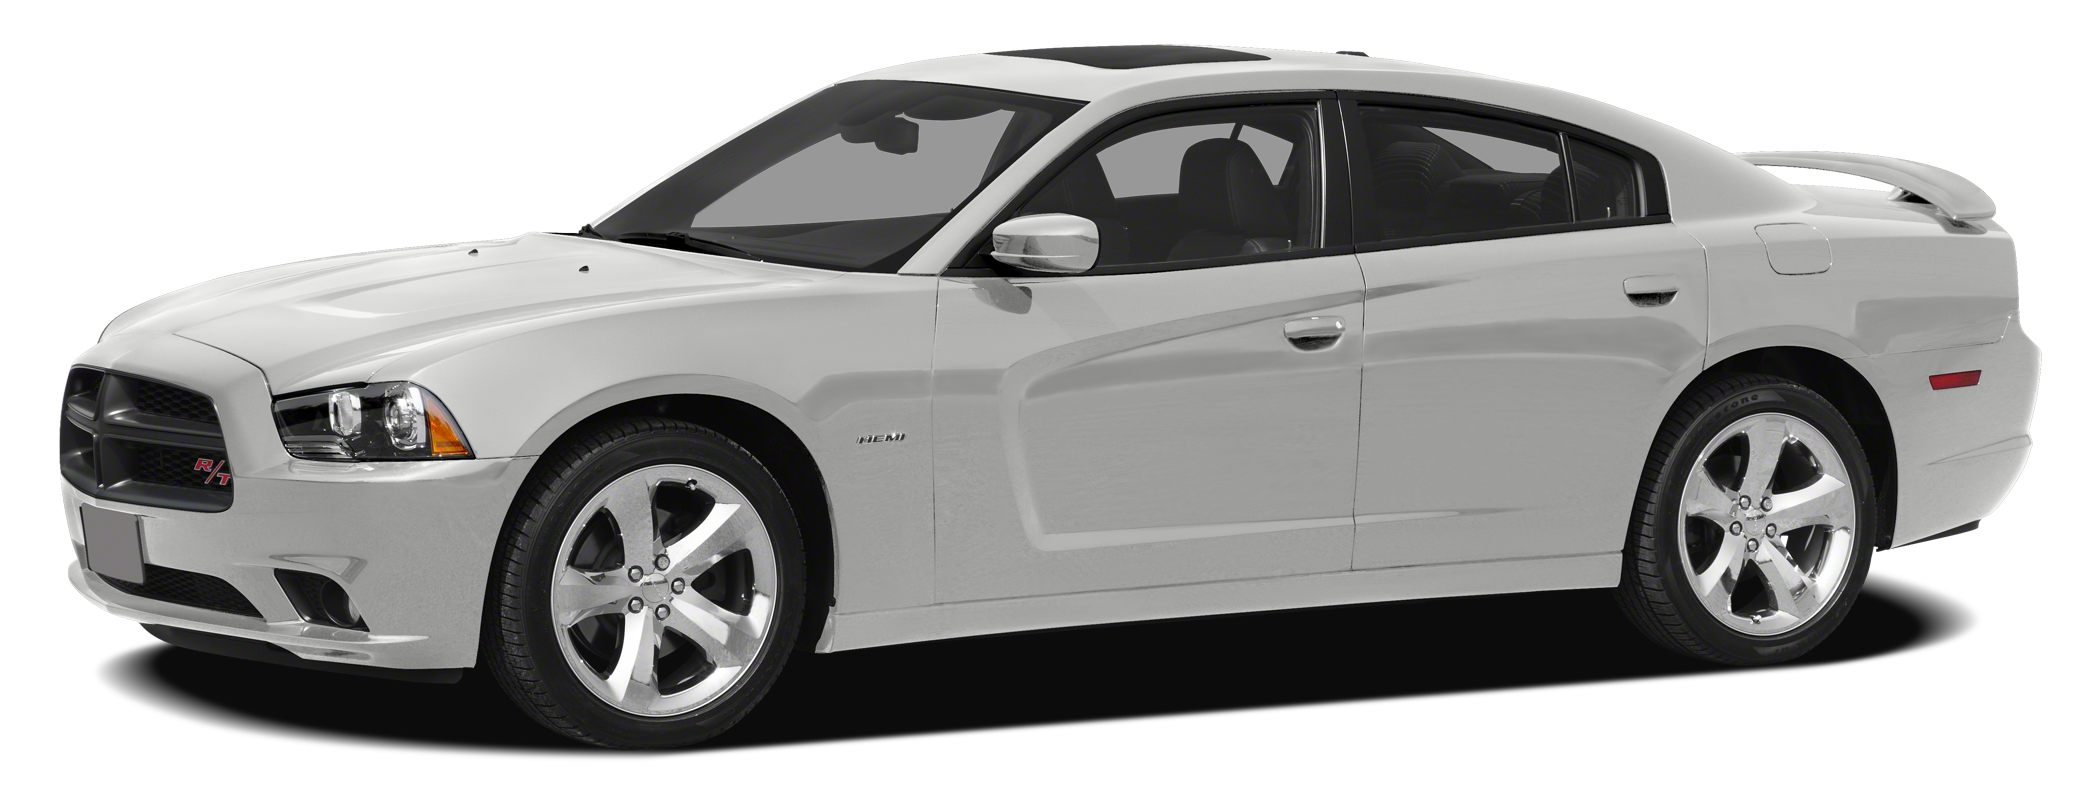 2011 Dodge Charger RT Heated seats power sunroof and traction control all come equipped on this